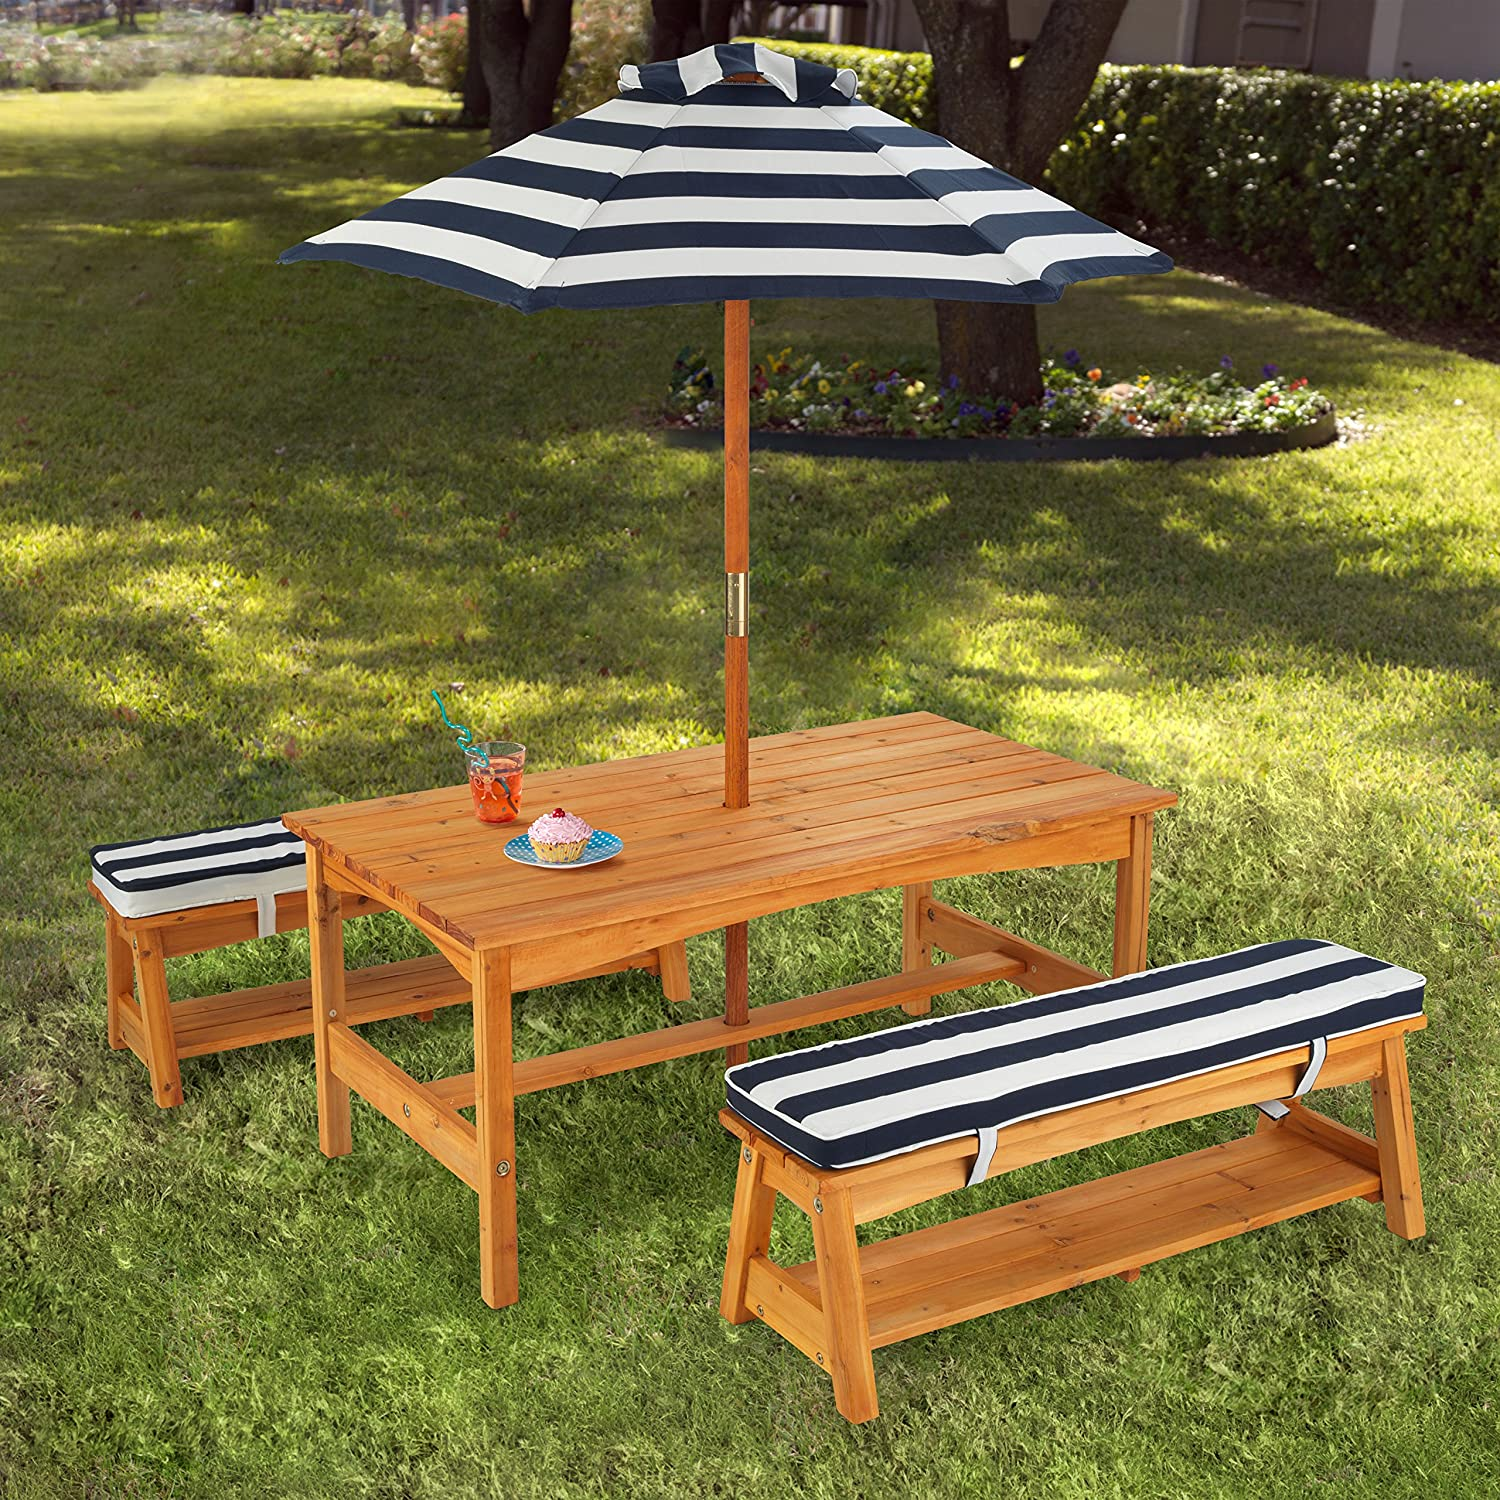 amazoncom kidkraft outdoor table and chair set with cushions and navy stripes toys games